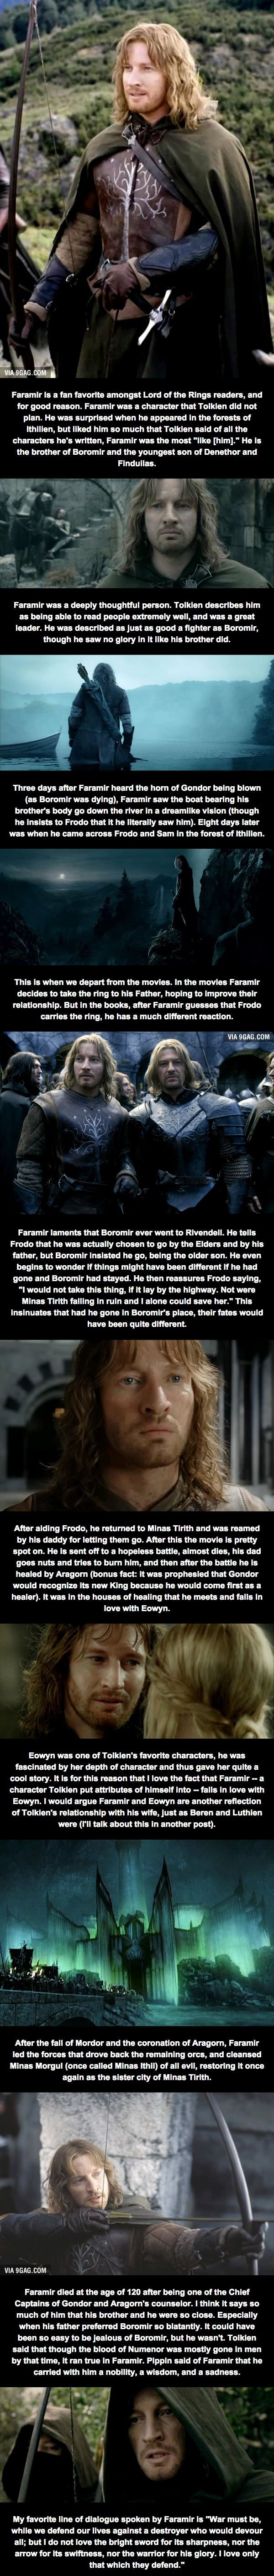 Relatively Unknown LoTR Fact (Part 5) - Faramir Captain of Gondor